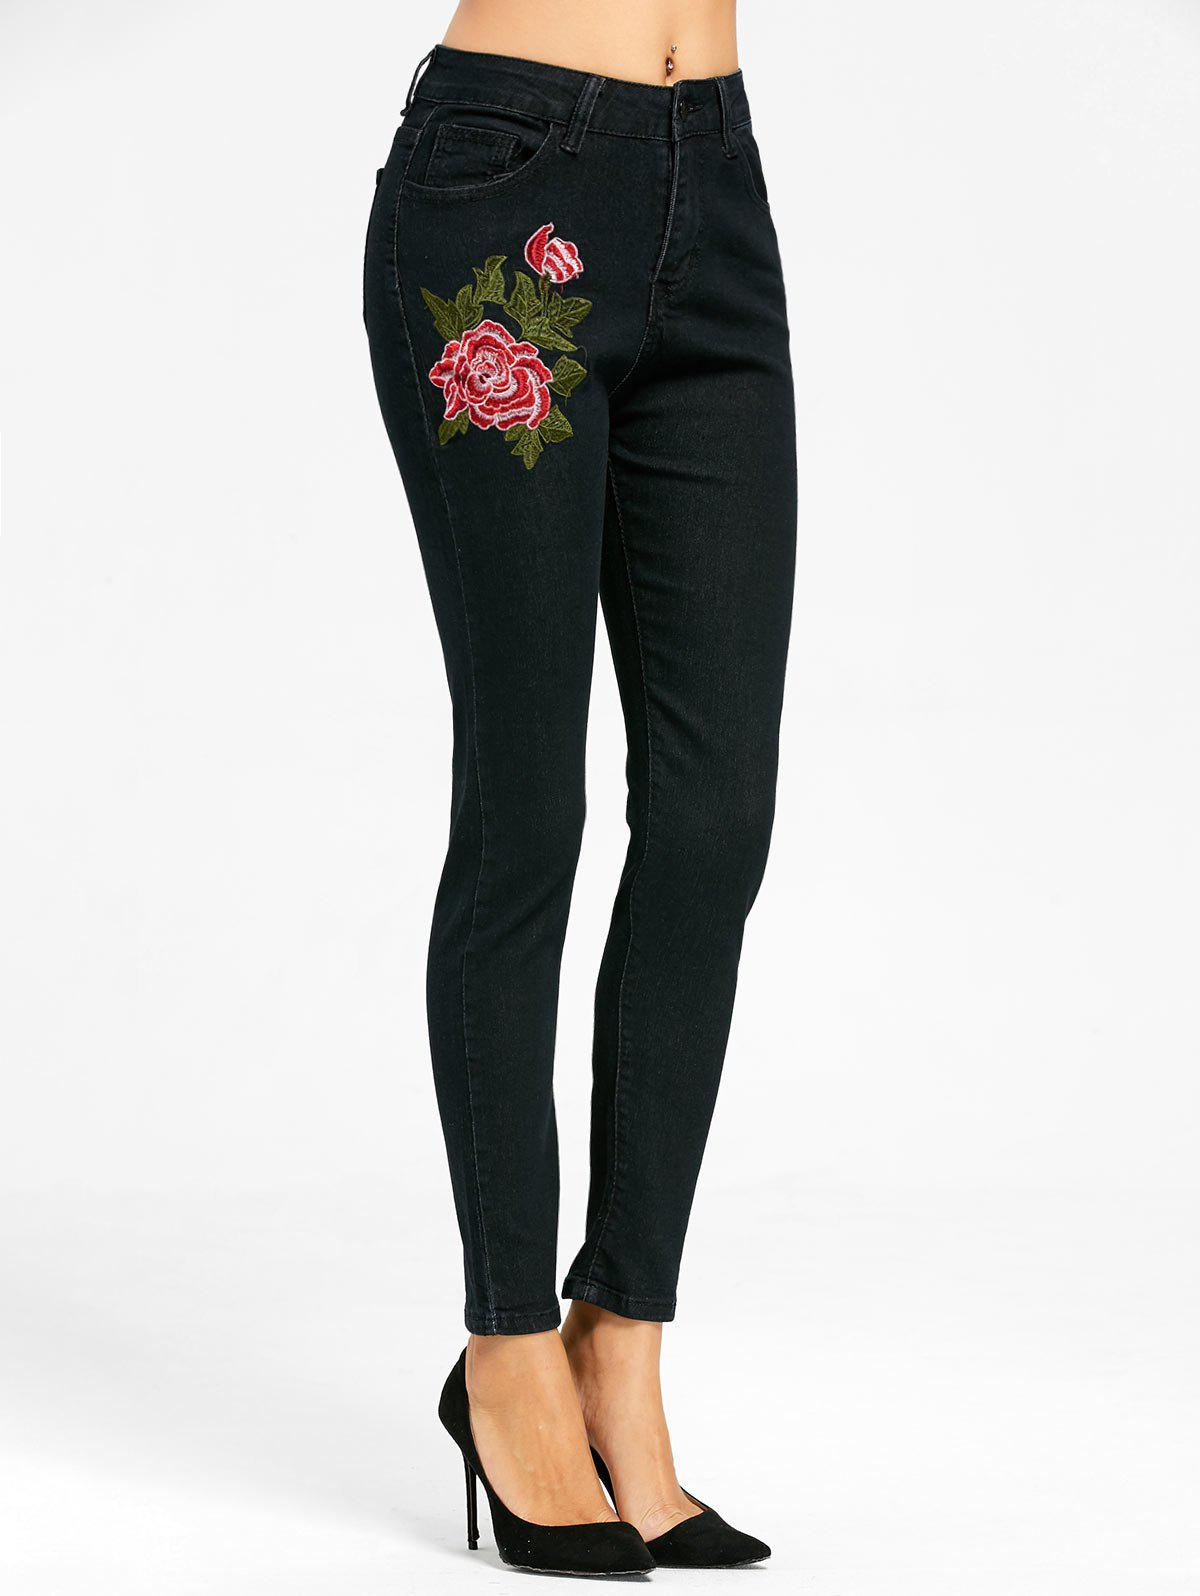 Floral Embroidered Zipper Fly Skinny Jeans - BLACK L